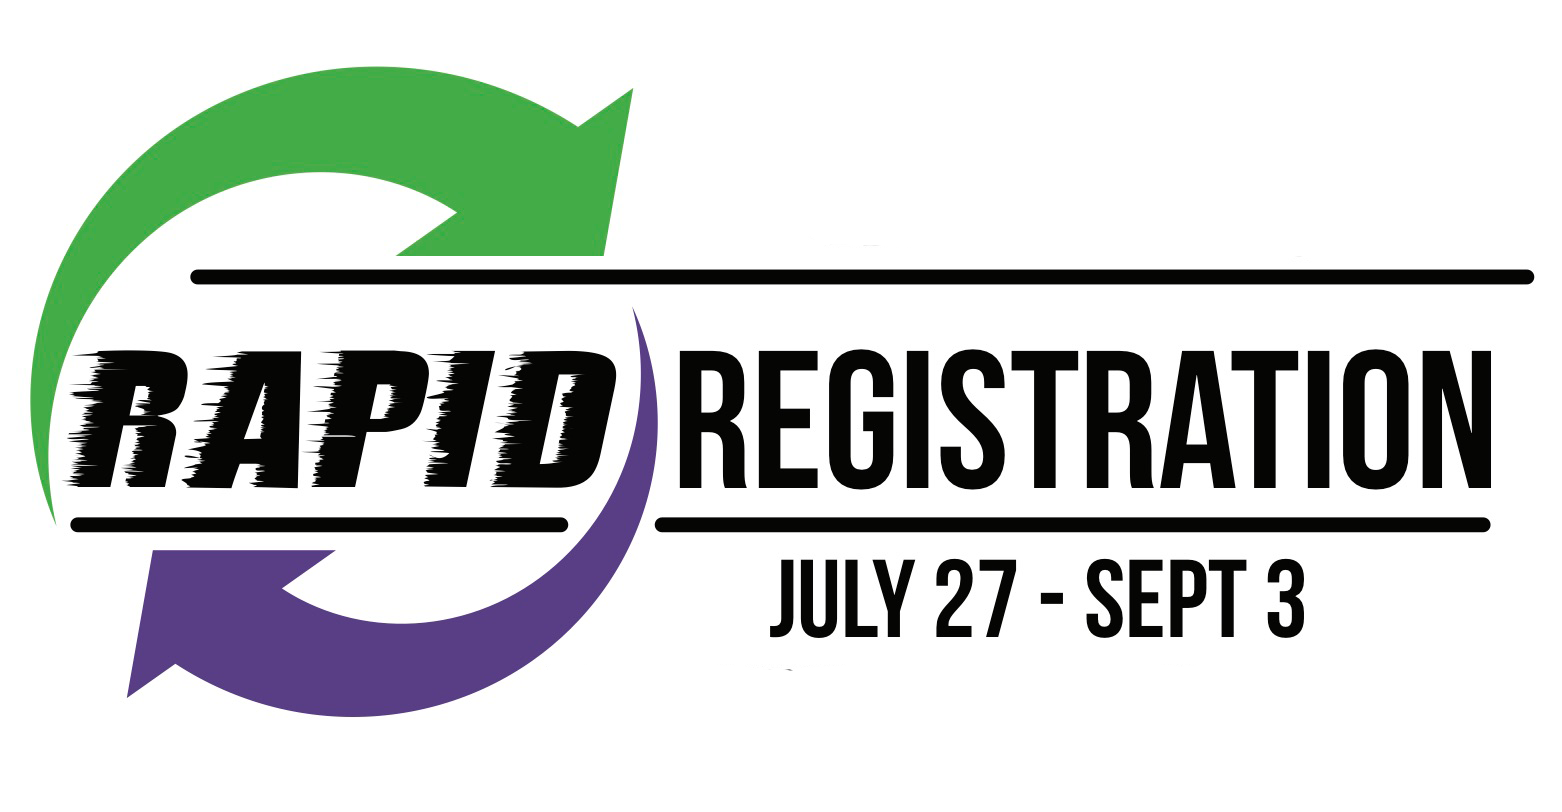 Rapid Registration green and purple logo